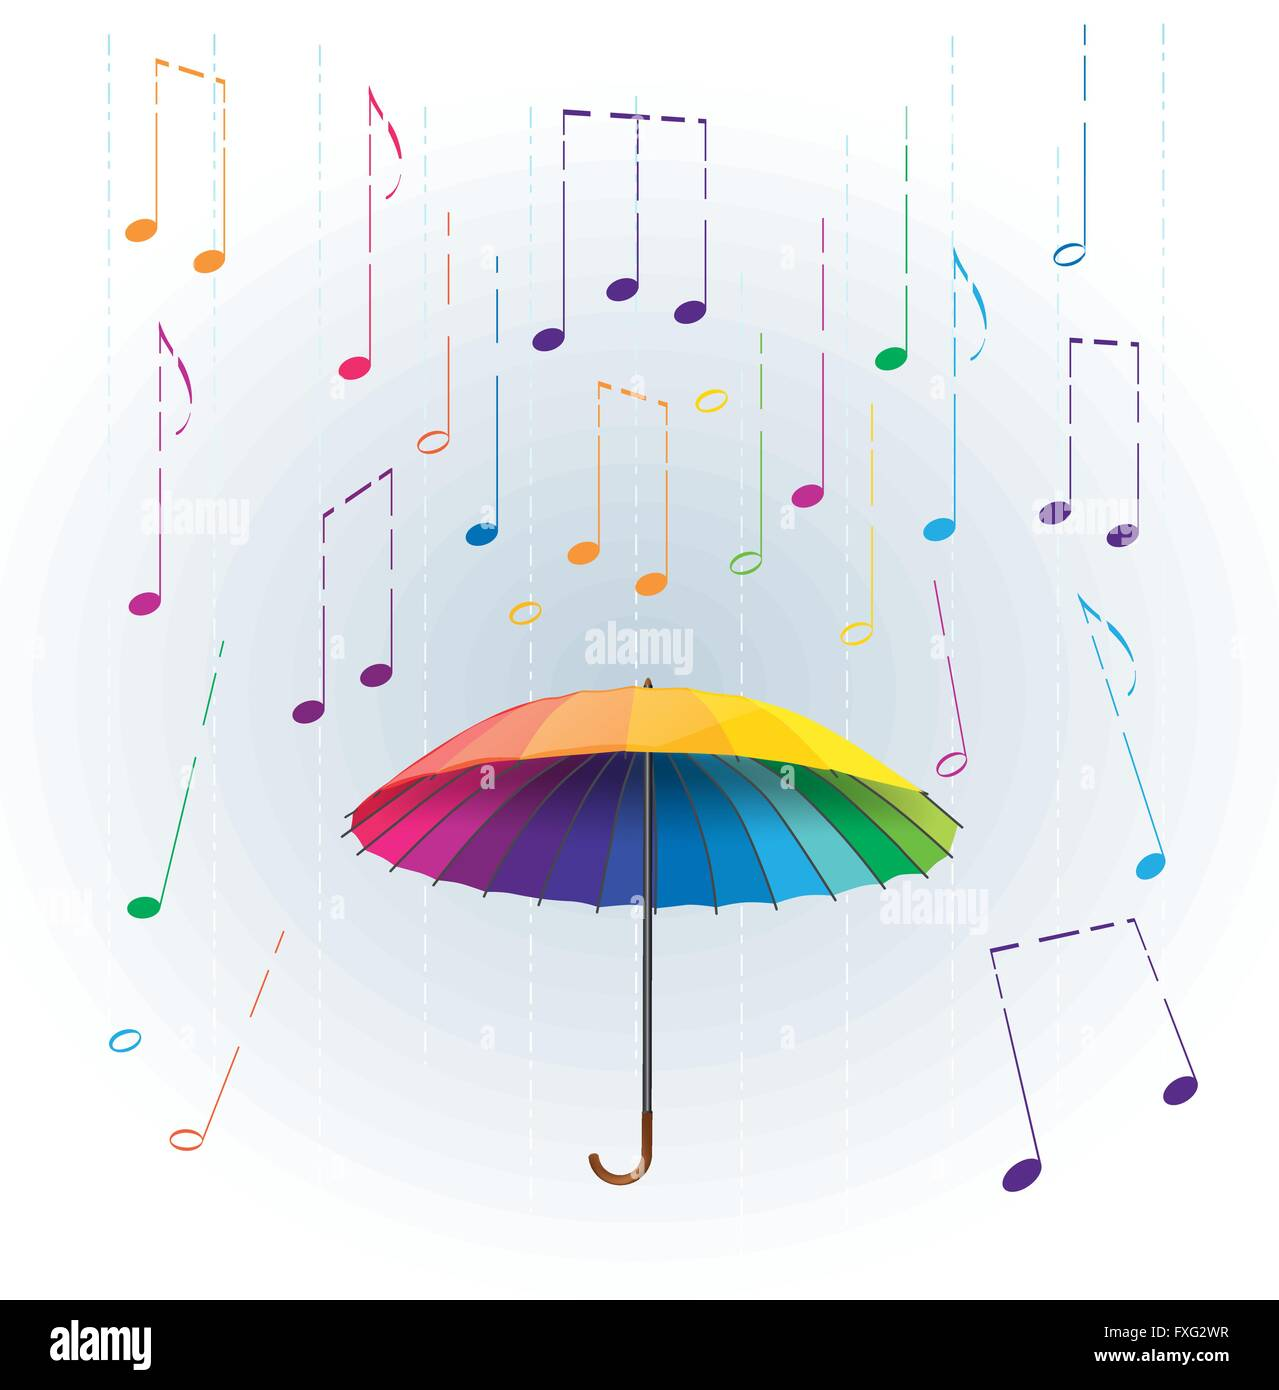 https://c8.alamy.com/compfr/fxg2wr/parapluie-arc-en-ciel-colores-comme-stylisee-avec-la-pluie-qui-tombe-des-notes-de-musique-abstract-illustration-musicale-fxg2wr.jpg